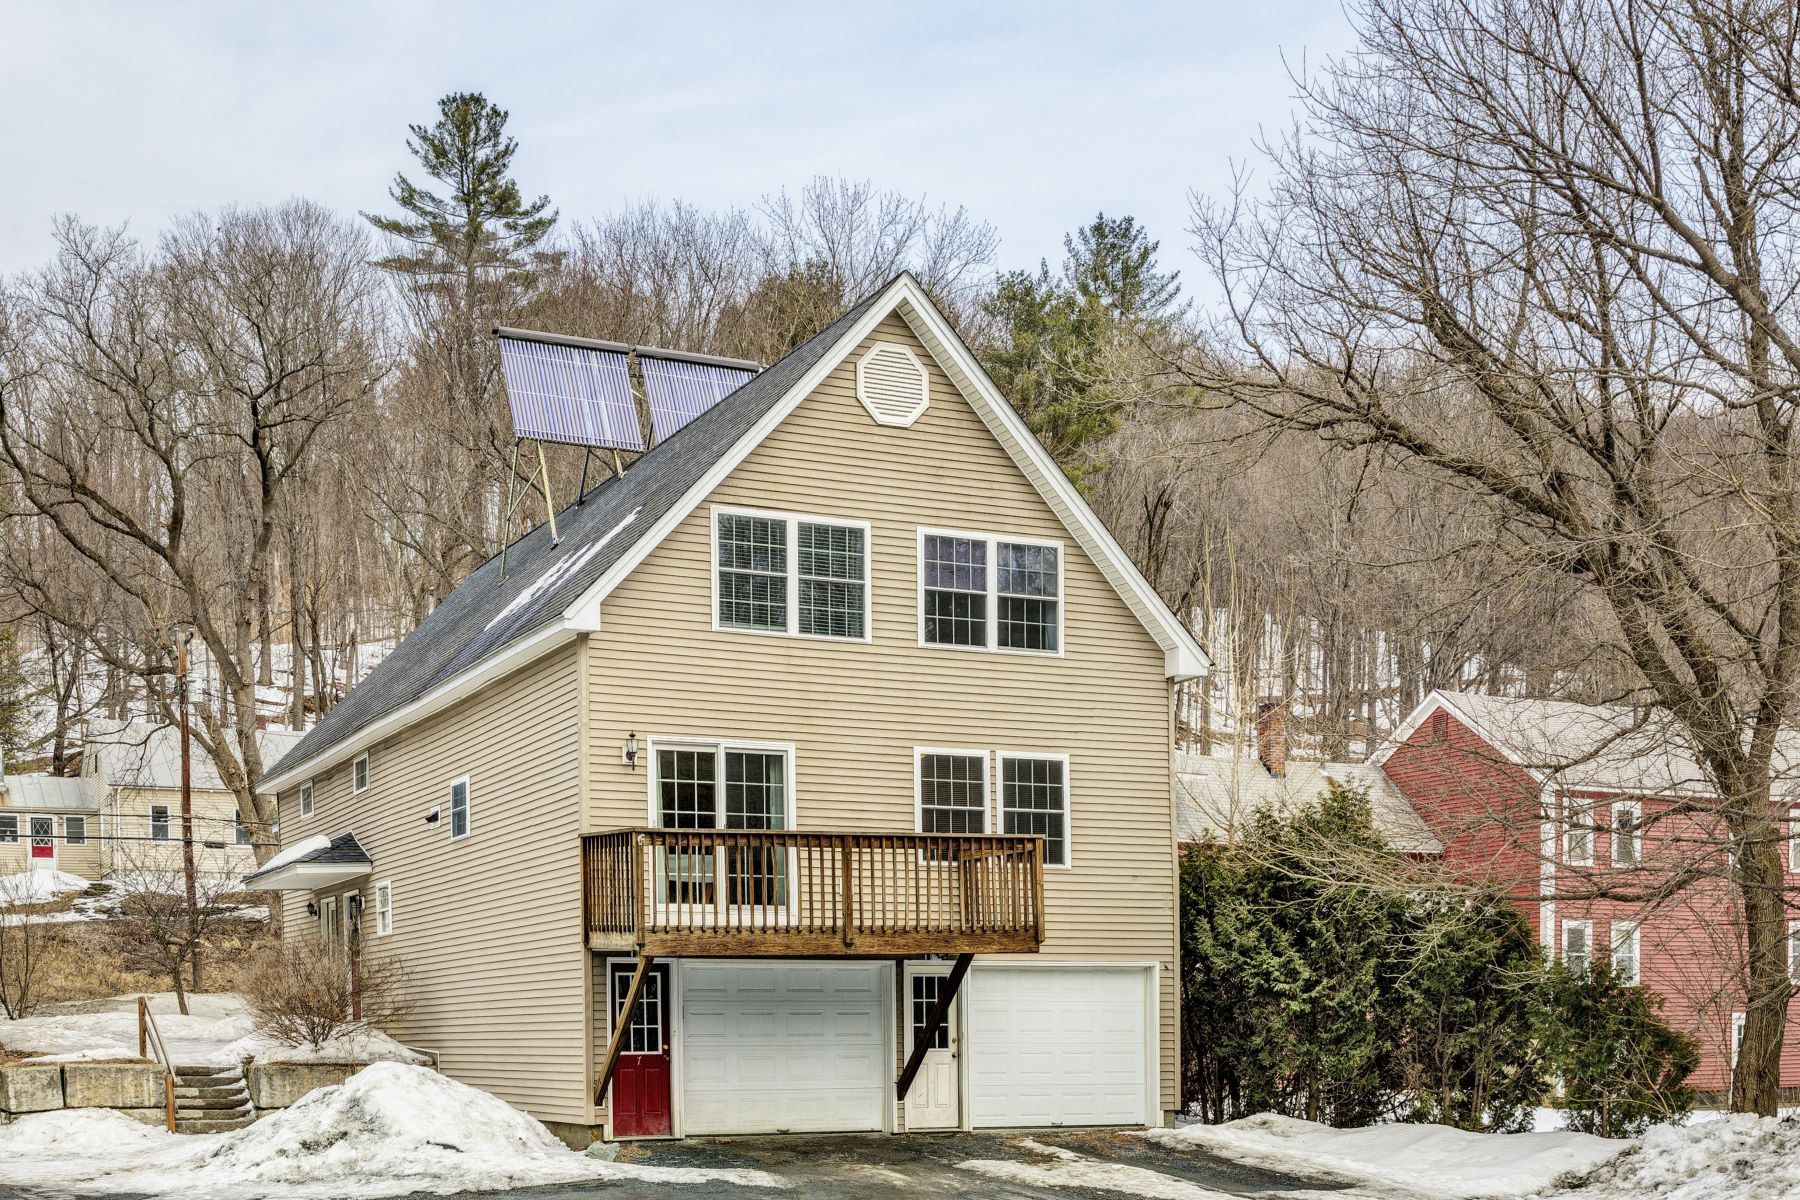 Condominium for Sale at Two Bedroom Condo on the River 1172 Maple St 7 Hartford, Vermont 05001 United States